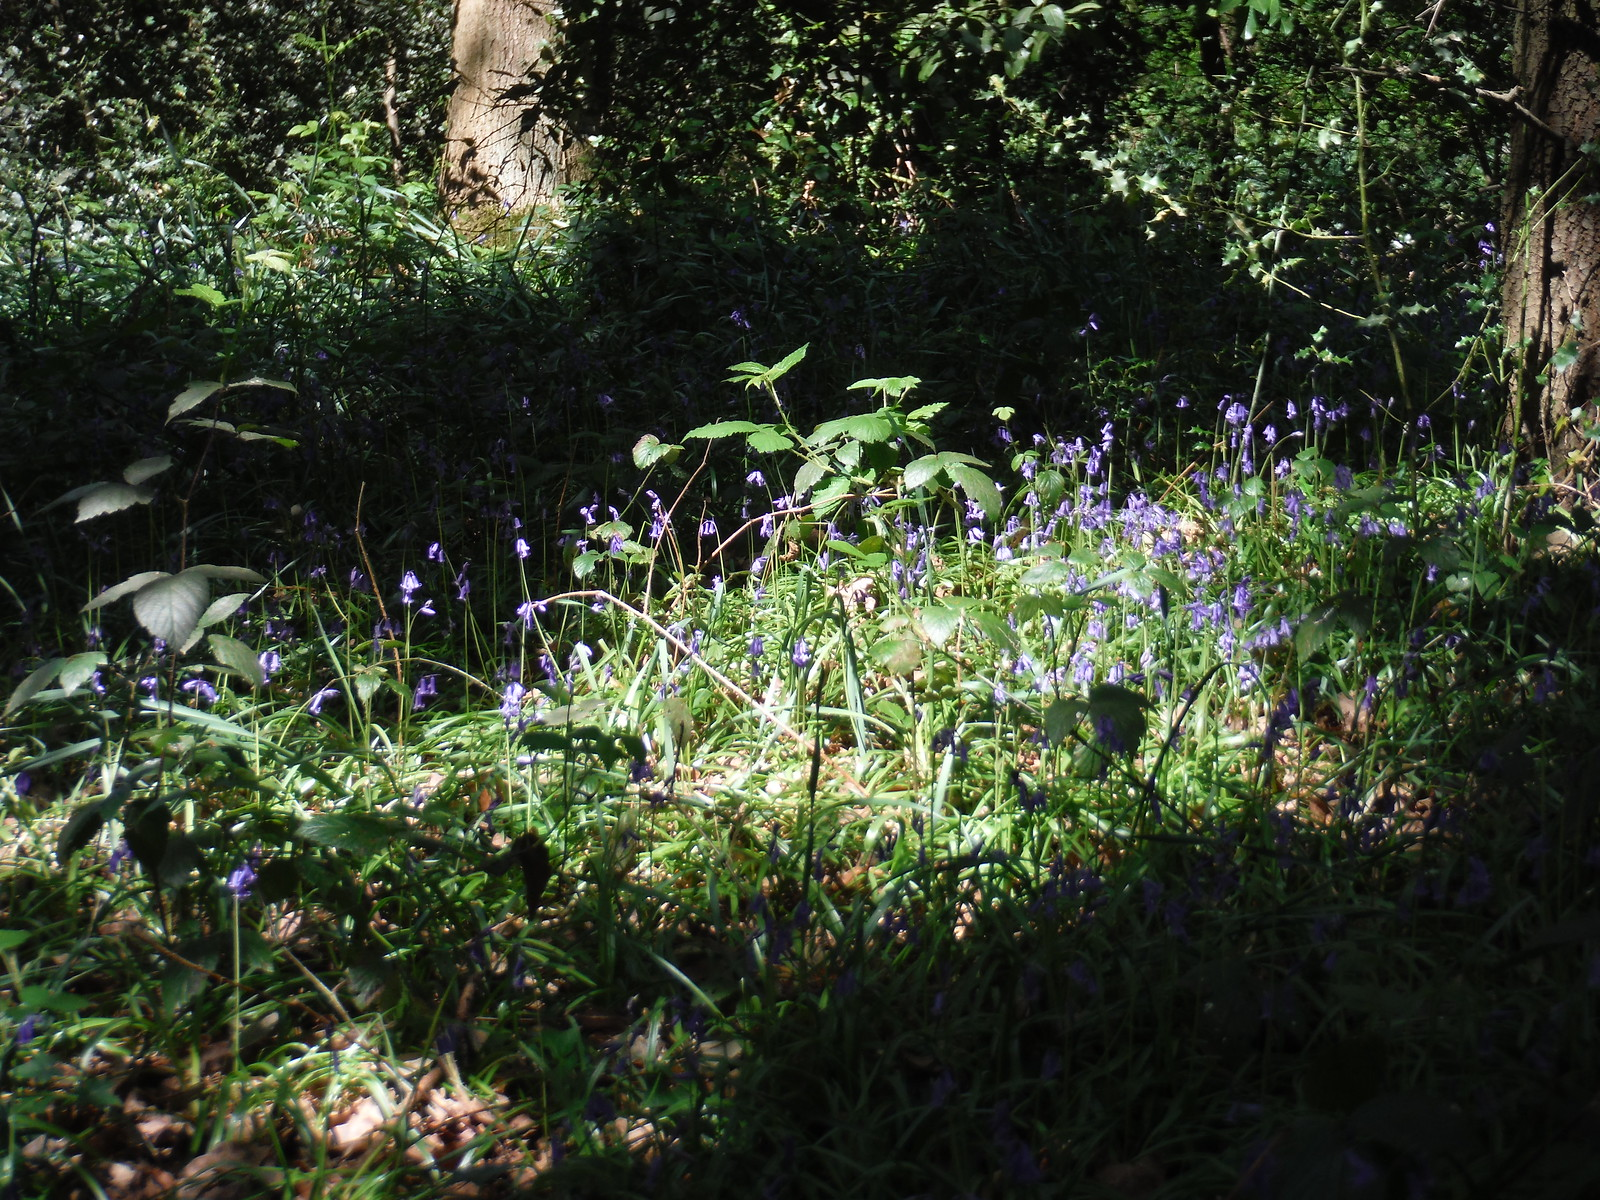 Bluebells in Jack Wood SWC Short Walk 44 - Oxleas Wood and Shooters Hill (Falconwood Circular)